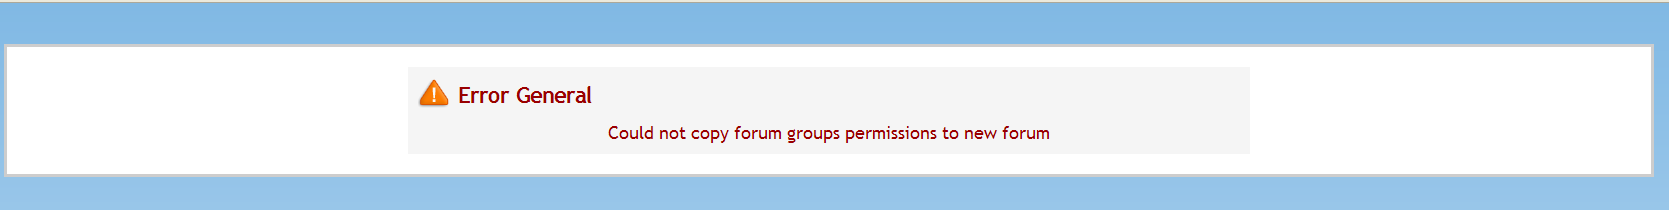 (2240): Erreur Générale -> Could not copy forum groups permissions to new forum 80010